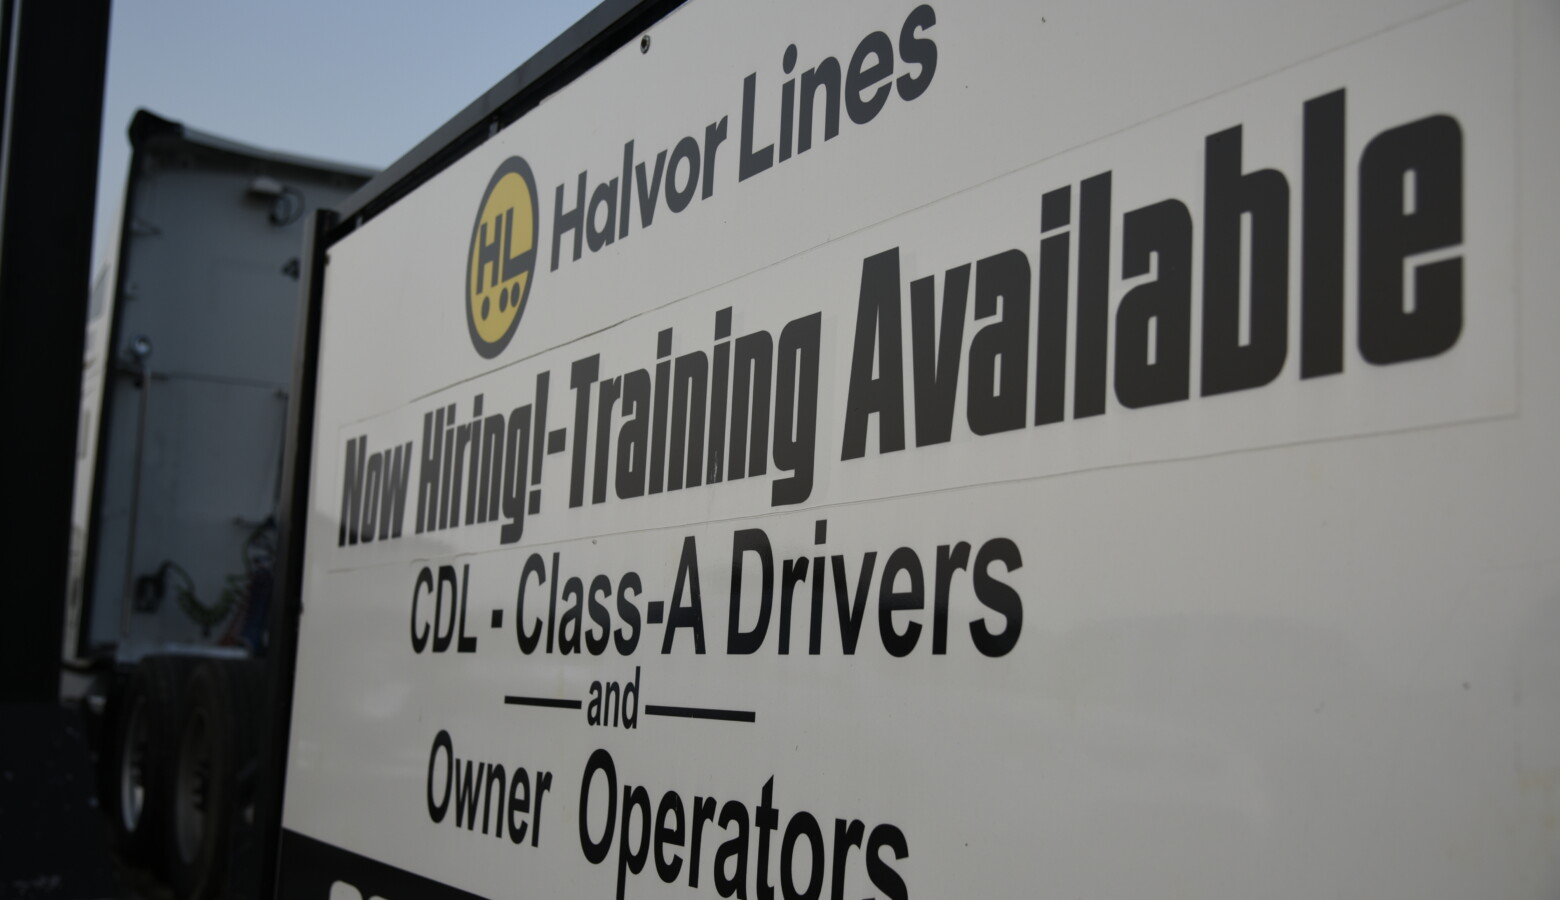 A trucking company in South Bend advertises training available to help new hires get CDL licenses. (Justin Hicks/IPB News)